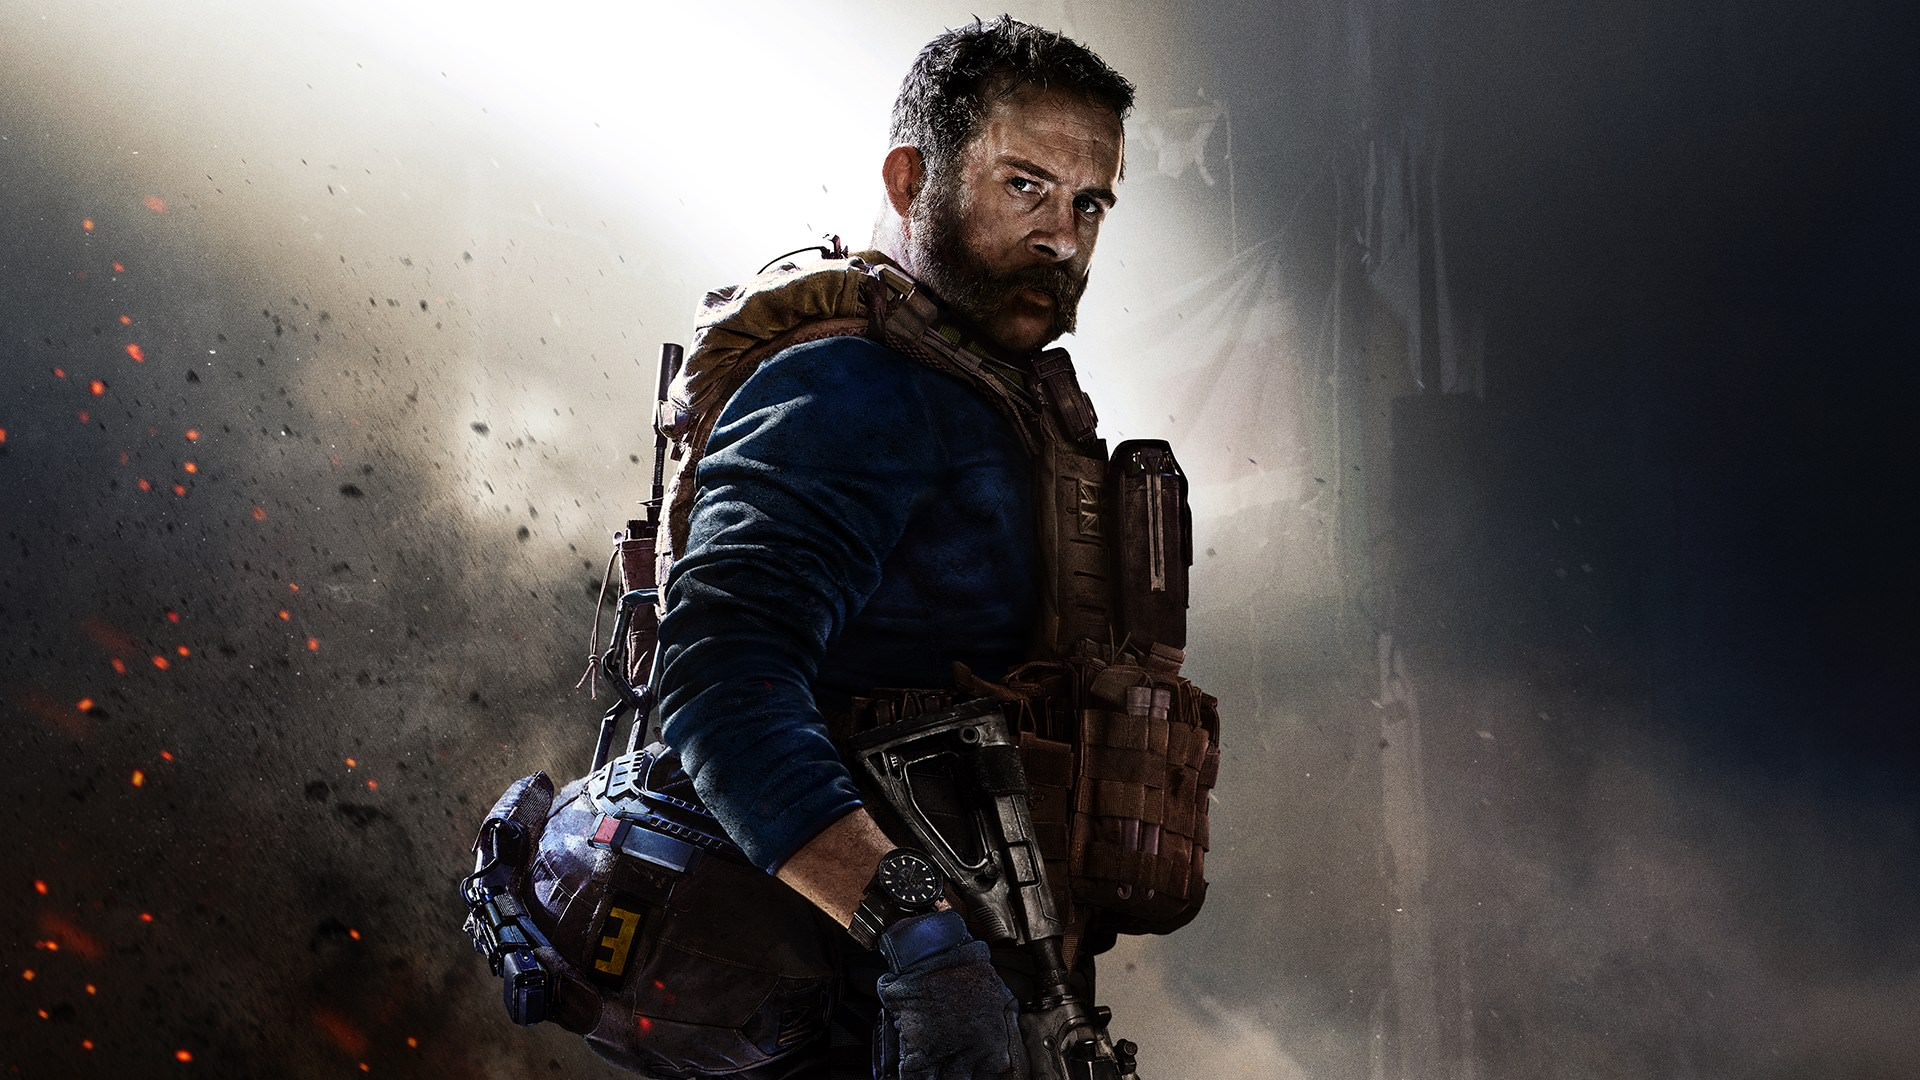 How To Fix Blurry Graphics In Modern Warfare Resident Entertainment